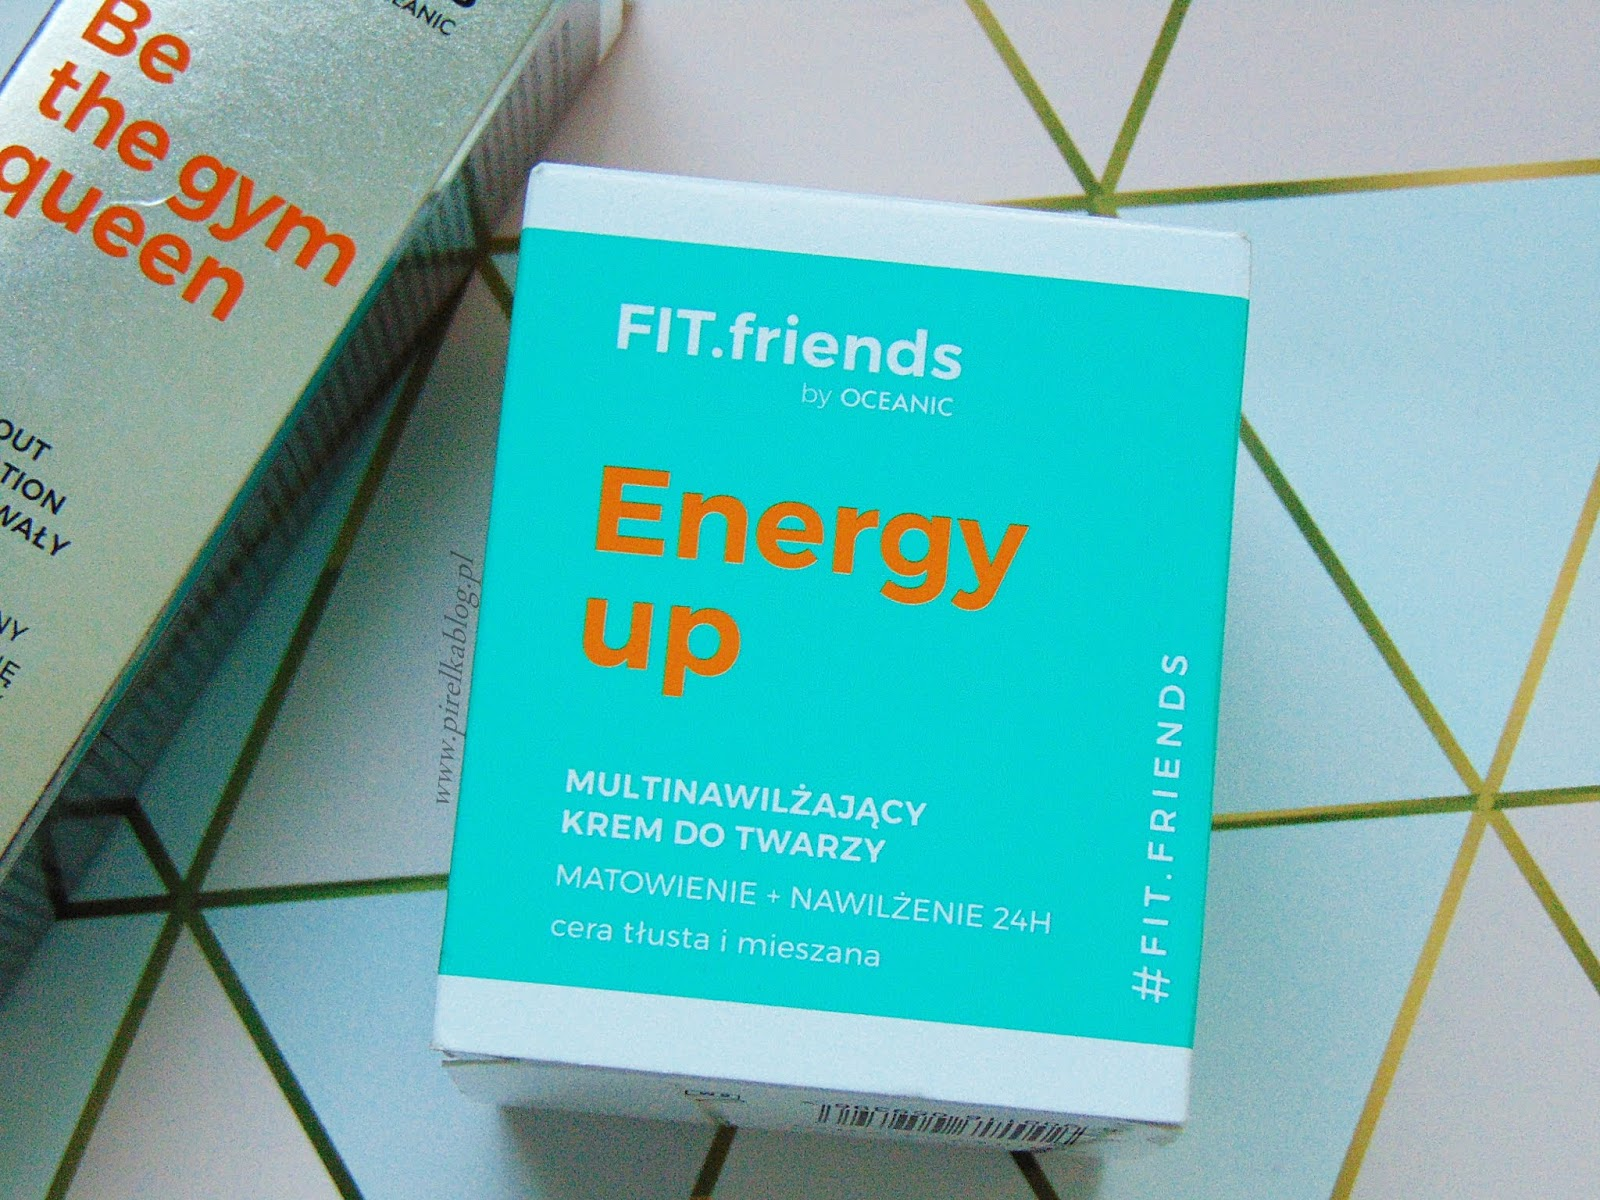 FIT friends by Oceanic, Energy UP - multinawilżający krem do twarzy